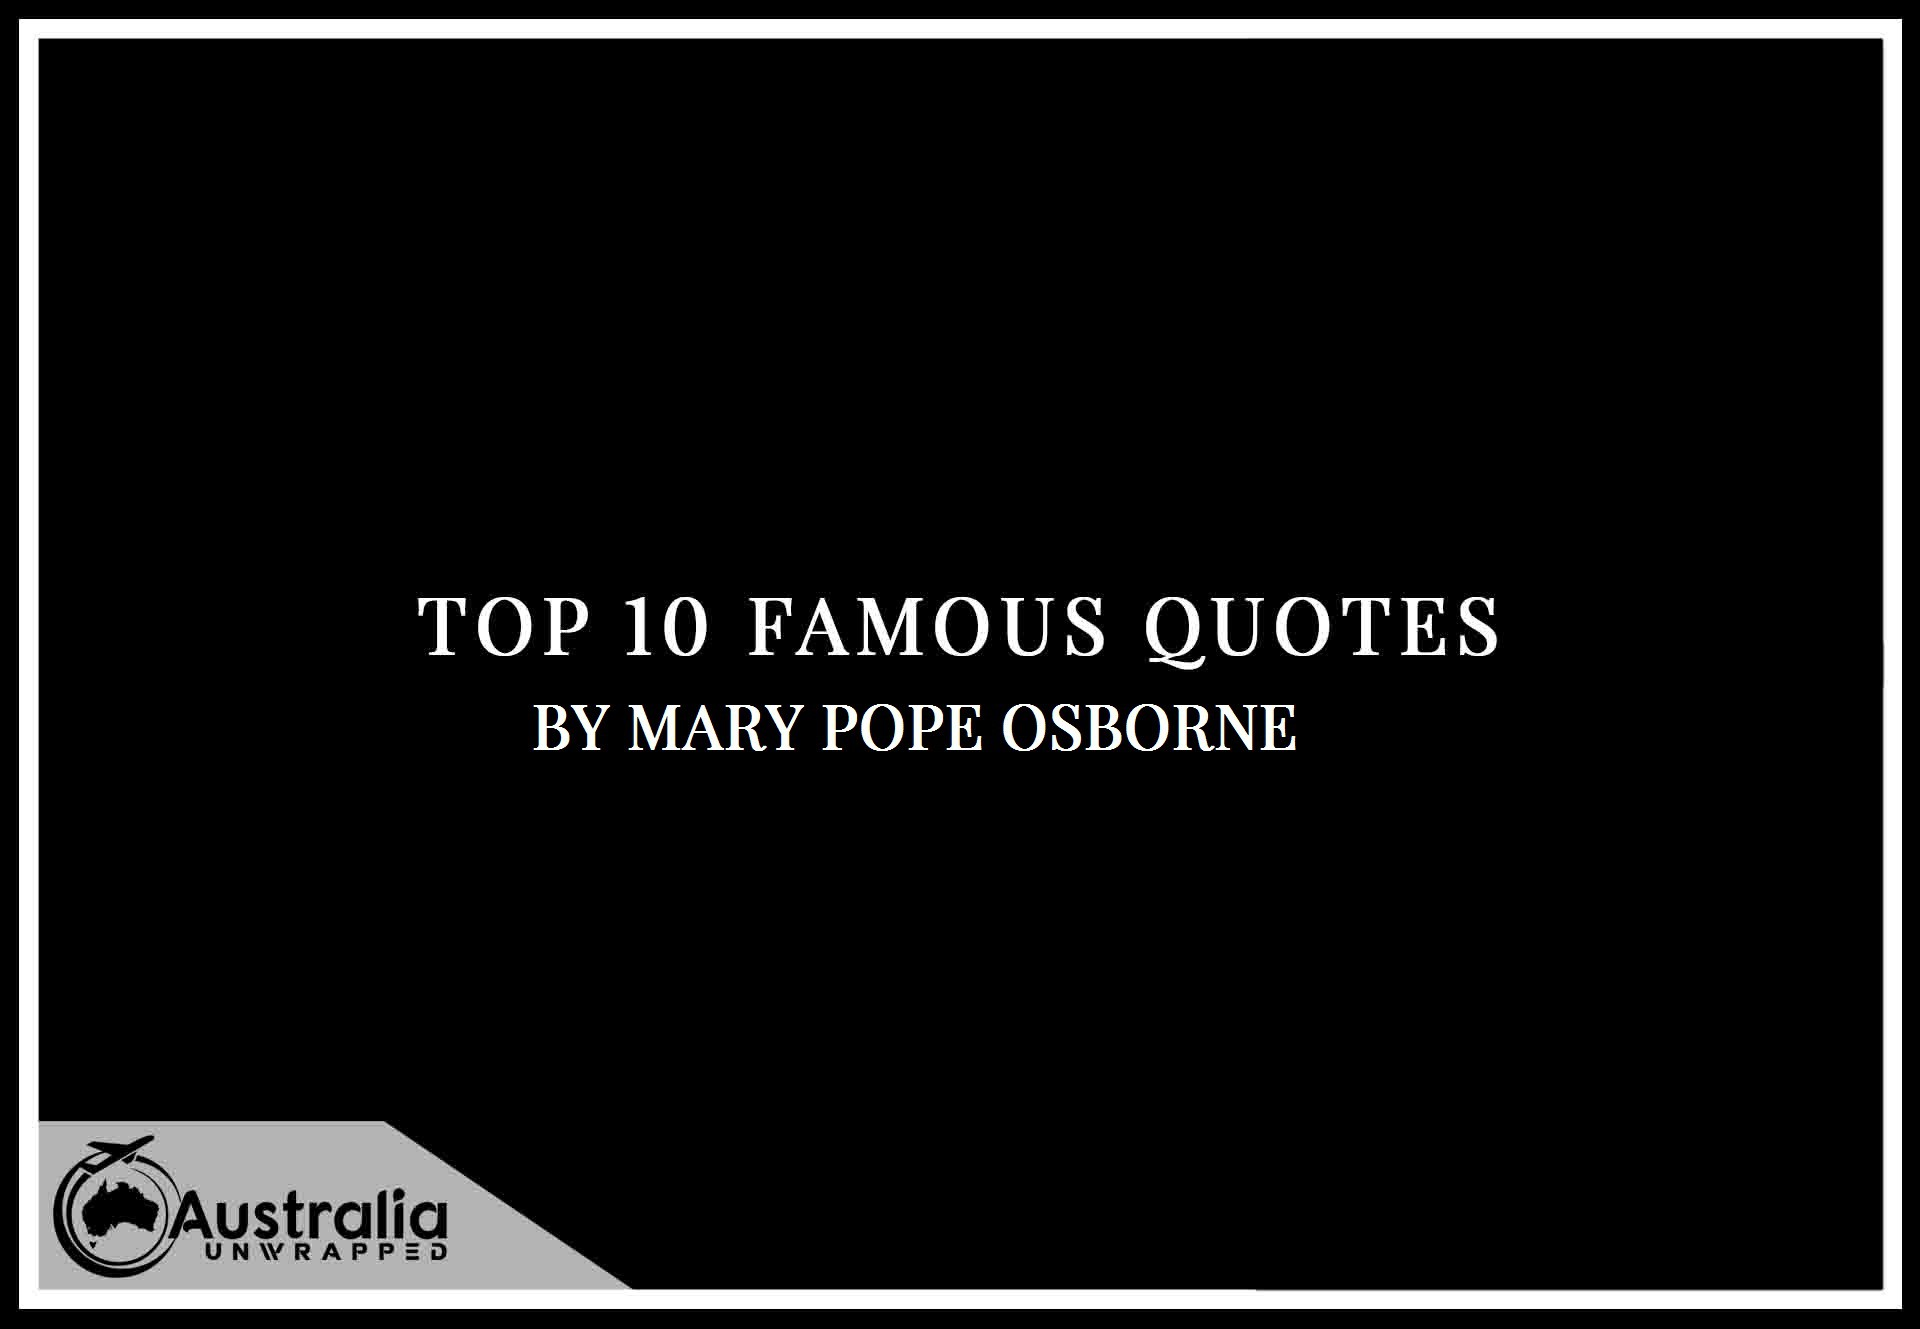 Mary Pope Osborne's Top 10 Popular and Famous Quotes